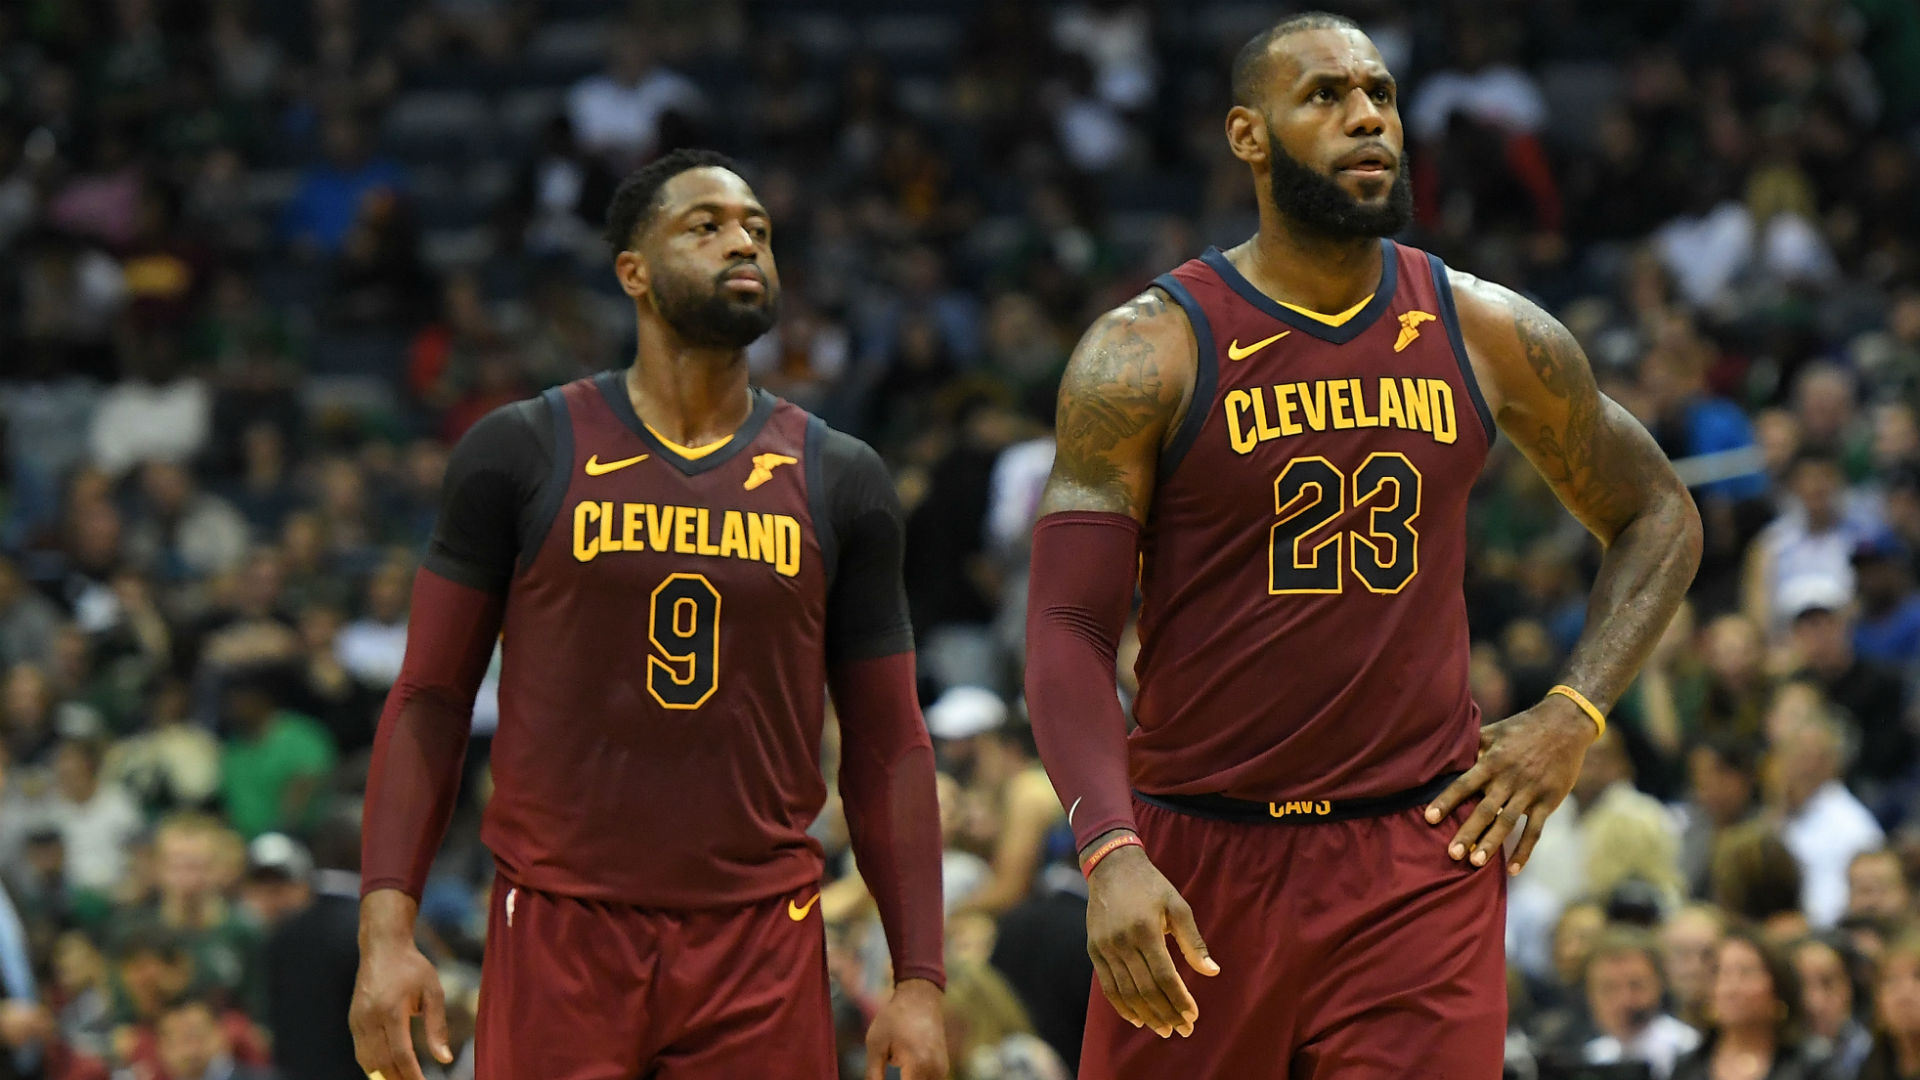 Jae Crowder on Cavs' 4th lineup change: 'We haven't found our groove yet'